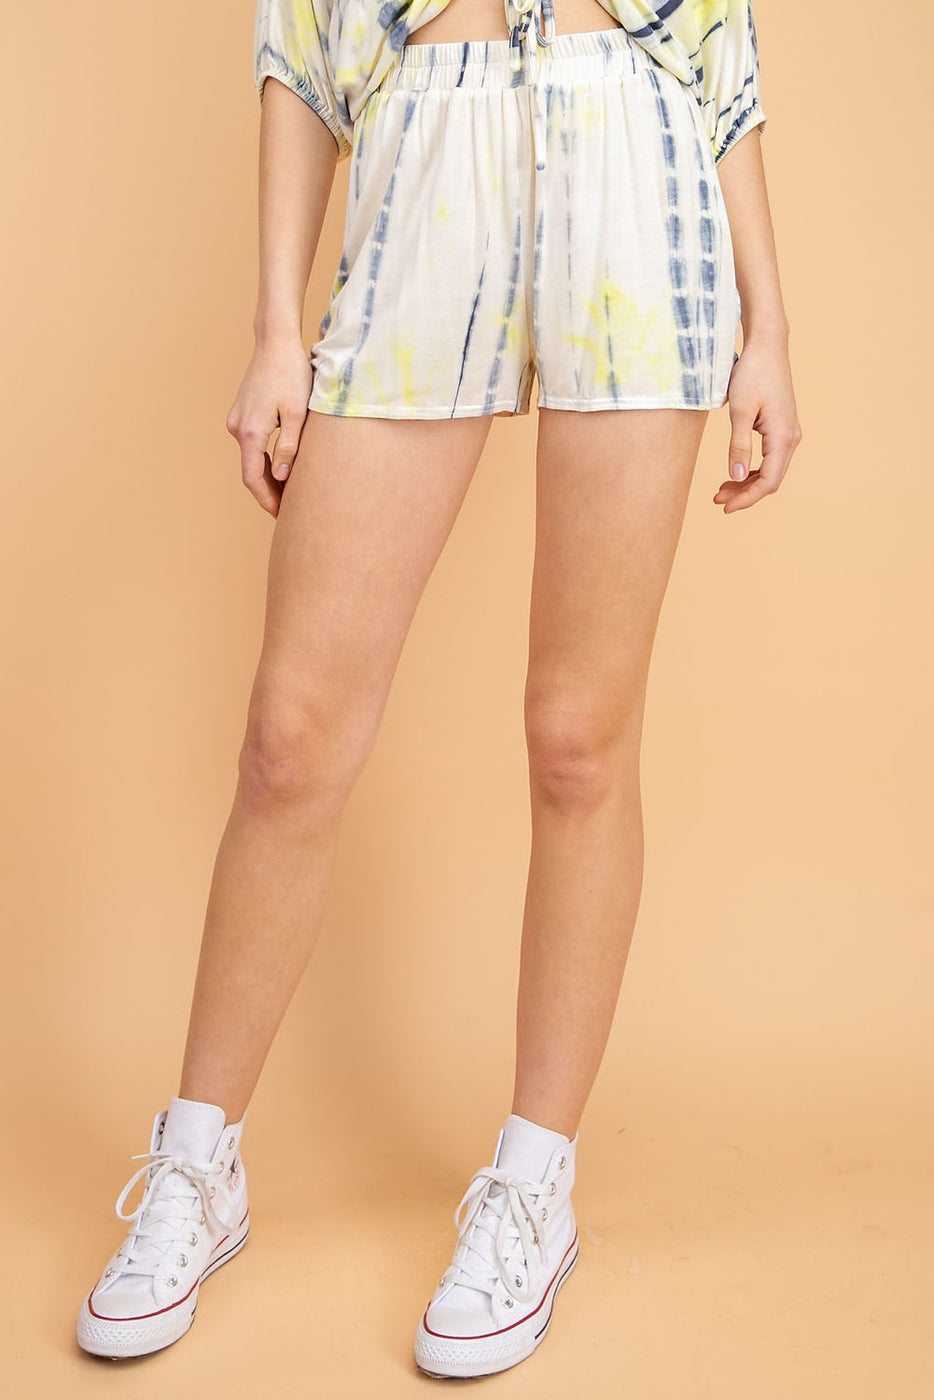 Blue-Yellow Shorts With Tie Dye Front Ruched Siin Bees